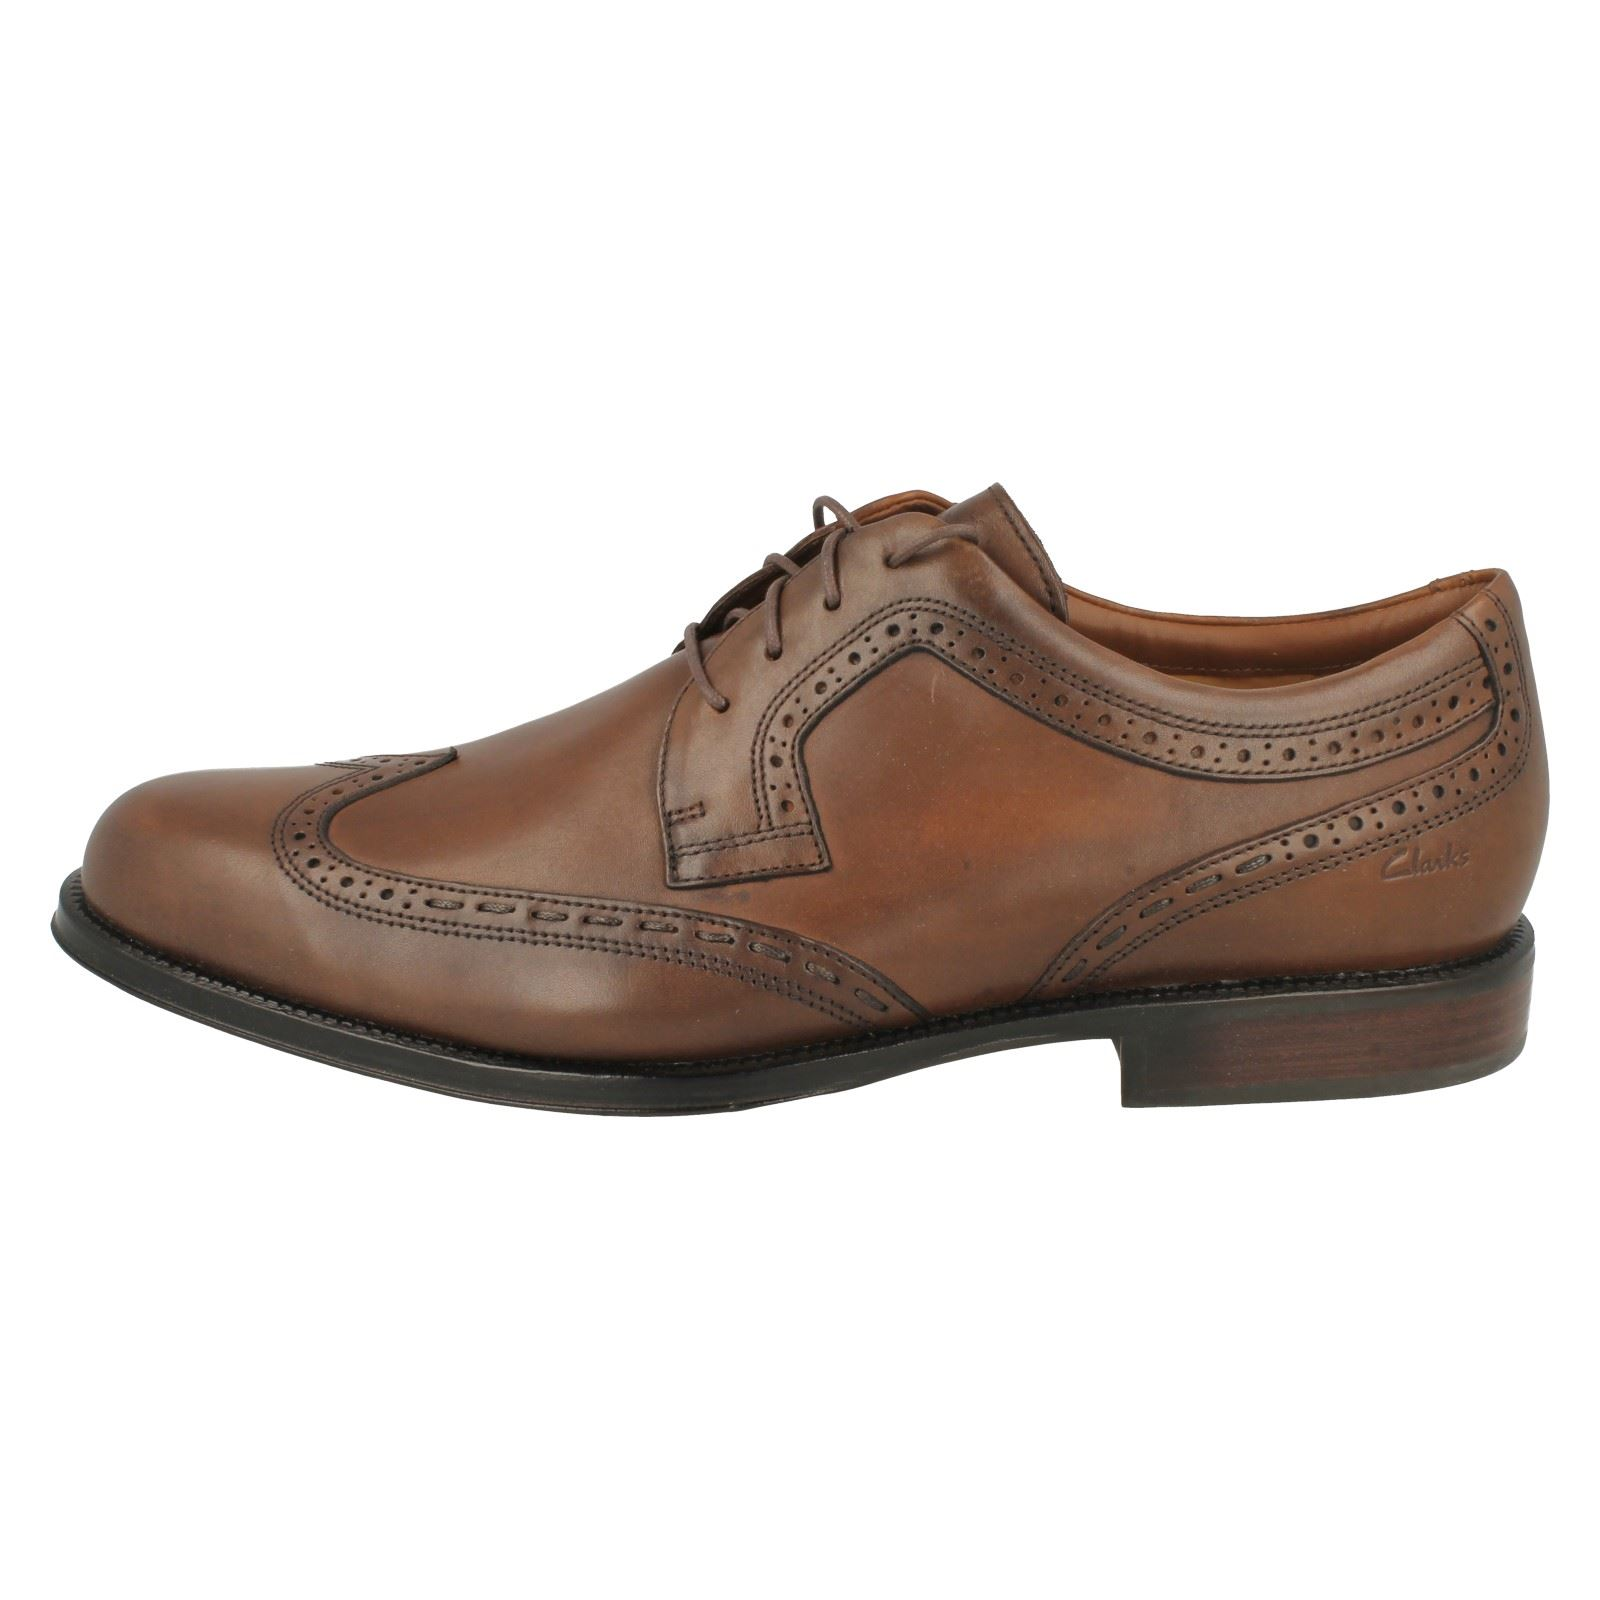 Brown Shoes Dino Brogue Formal Hombres Club Clarks TwRFgF